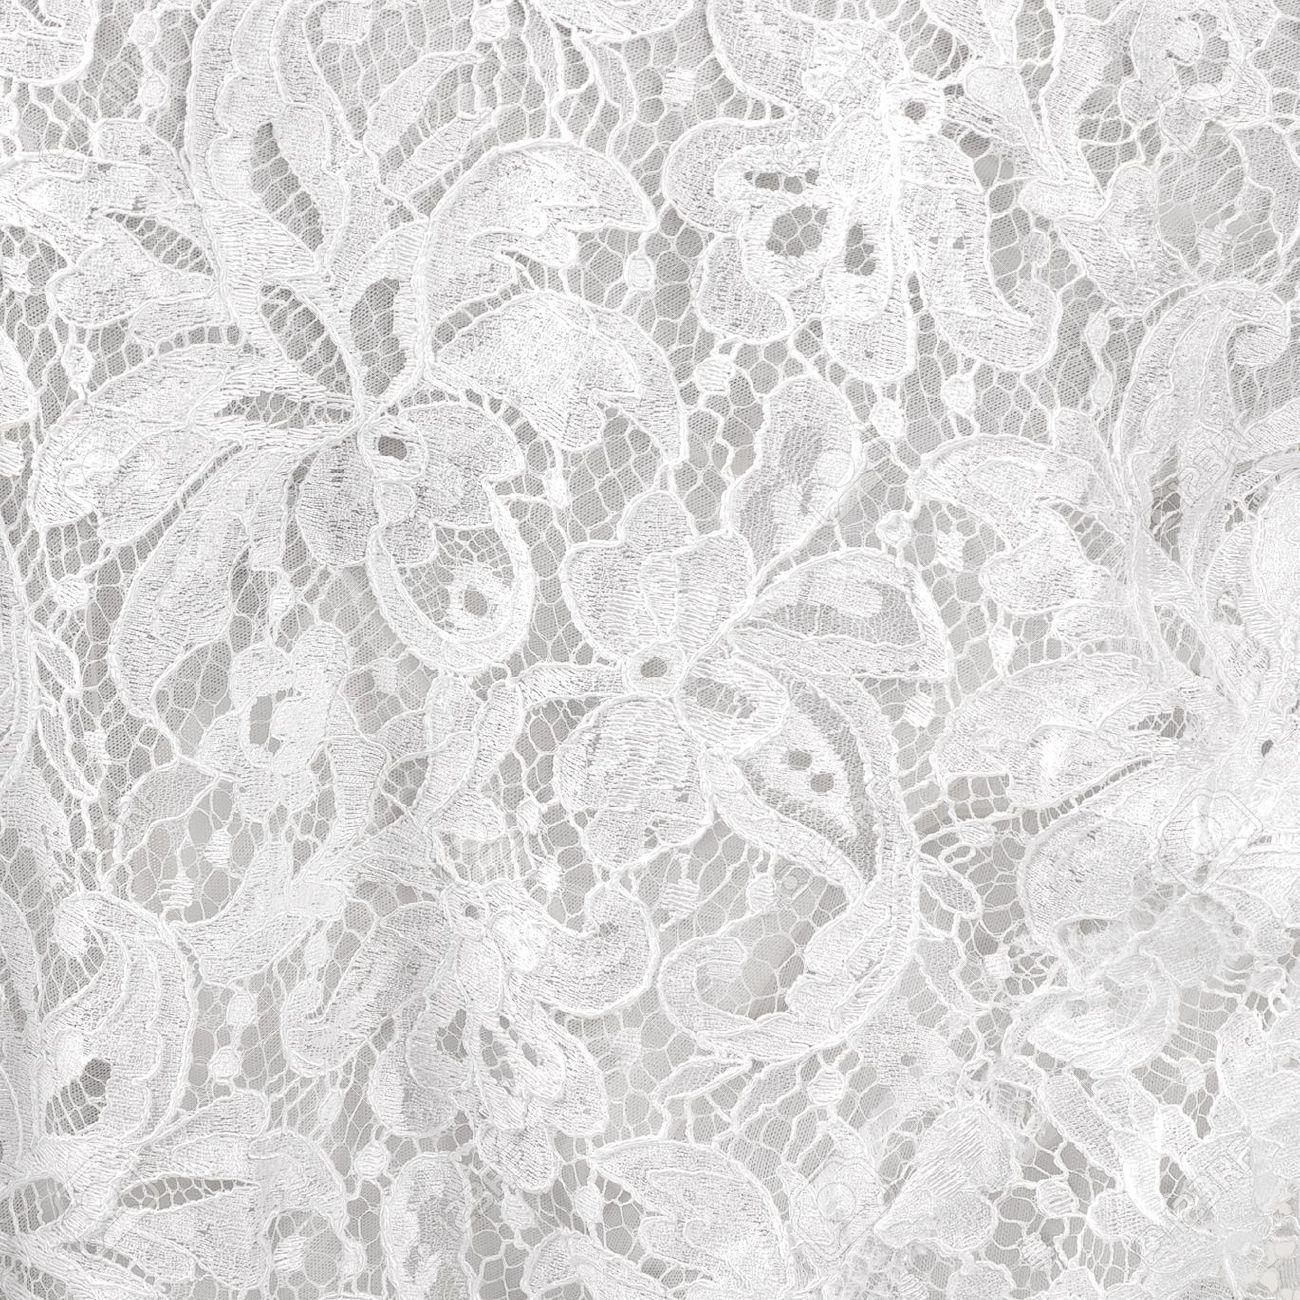 white lace tumblr backgrounds - photo #9